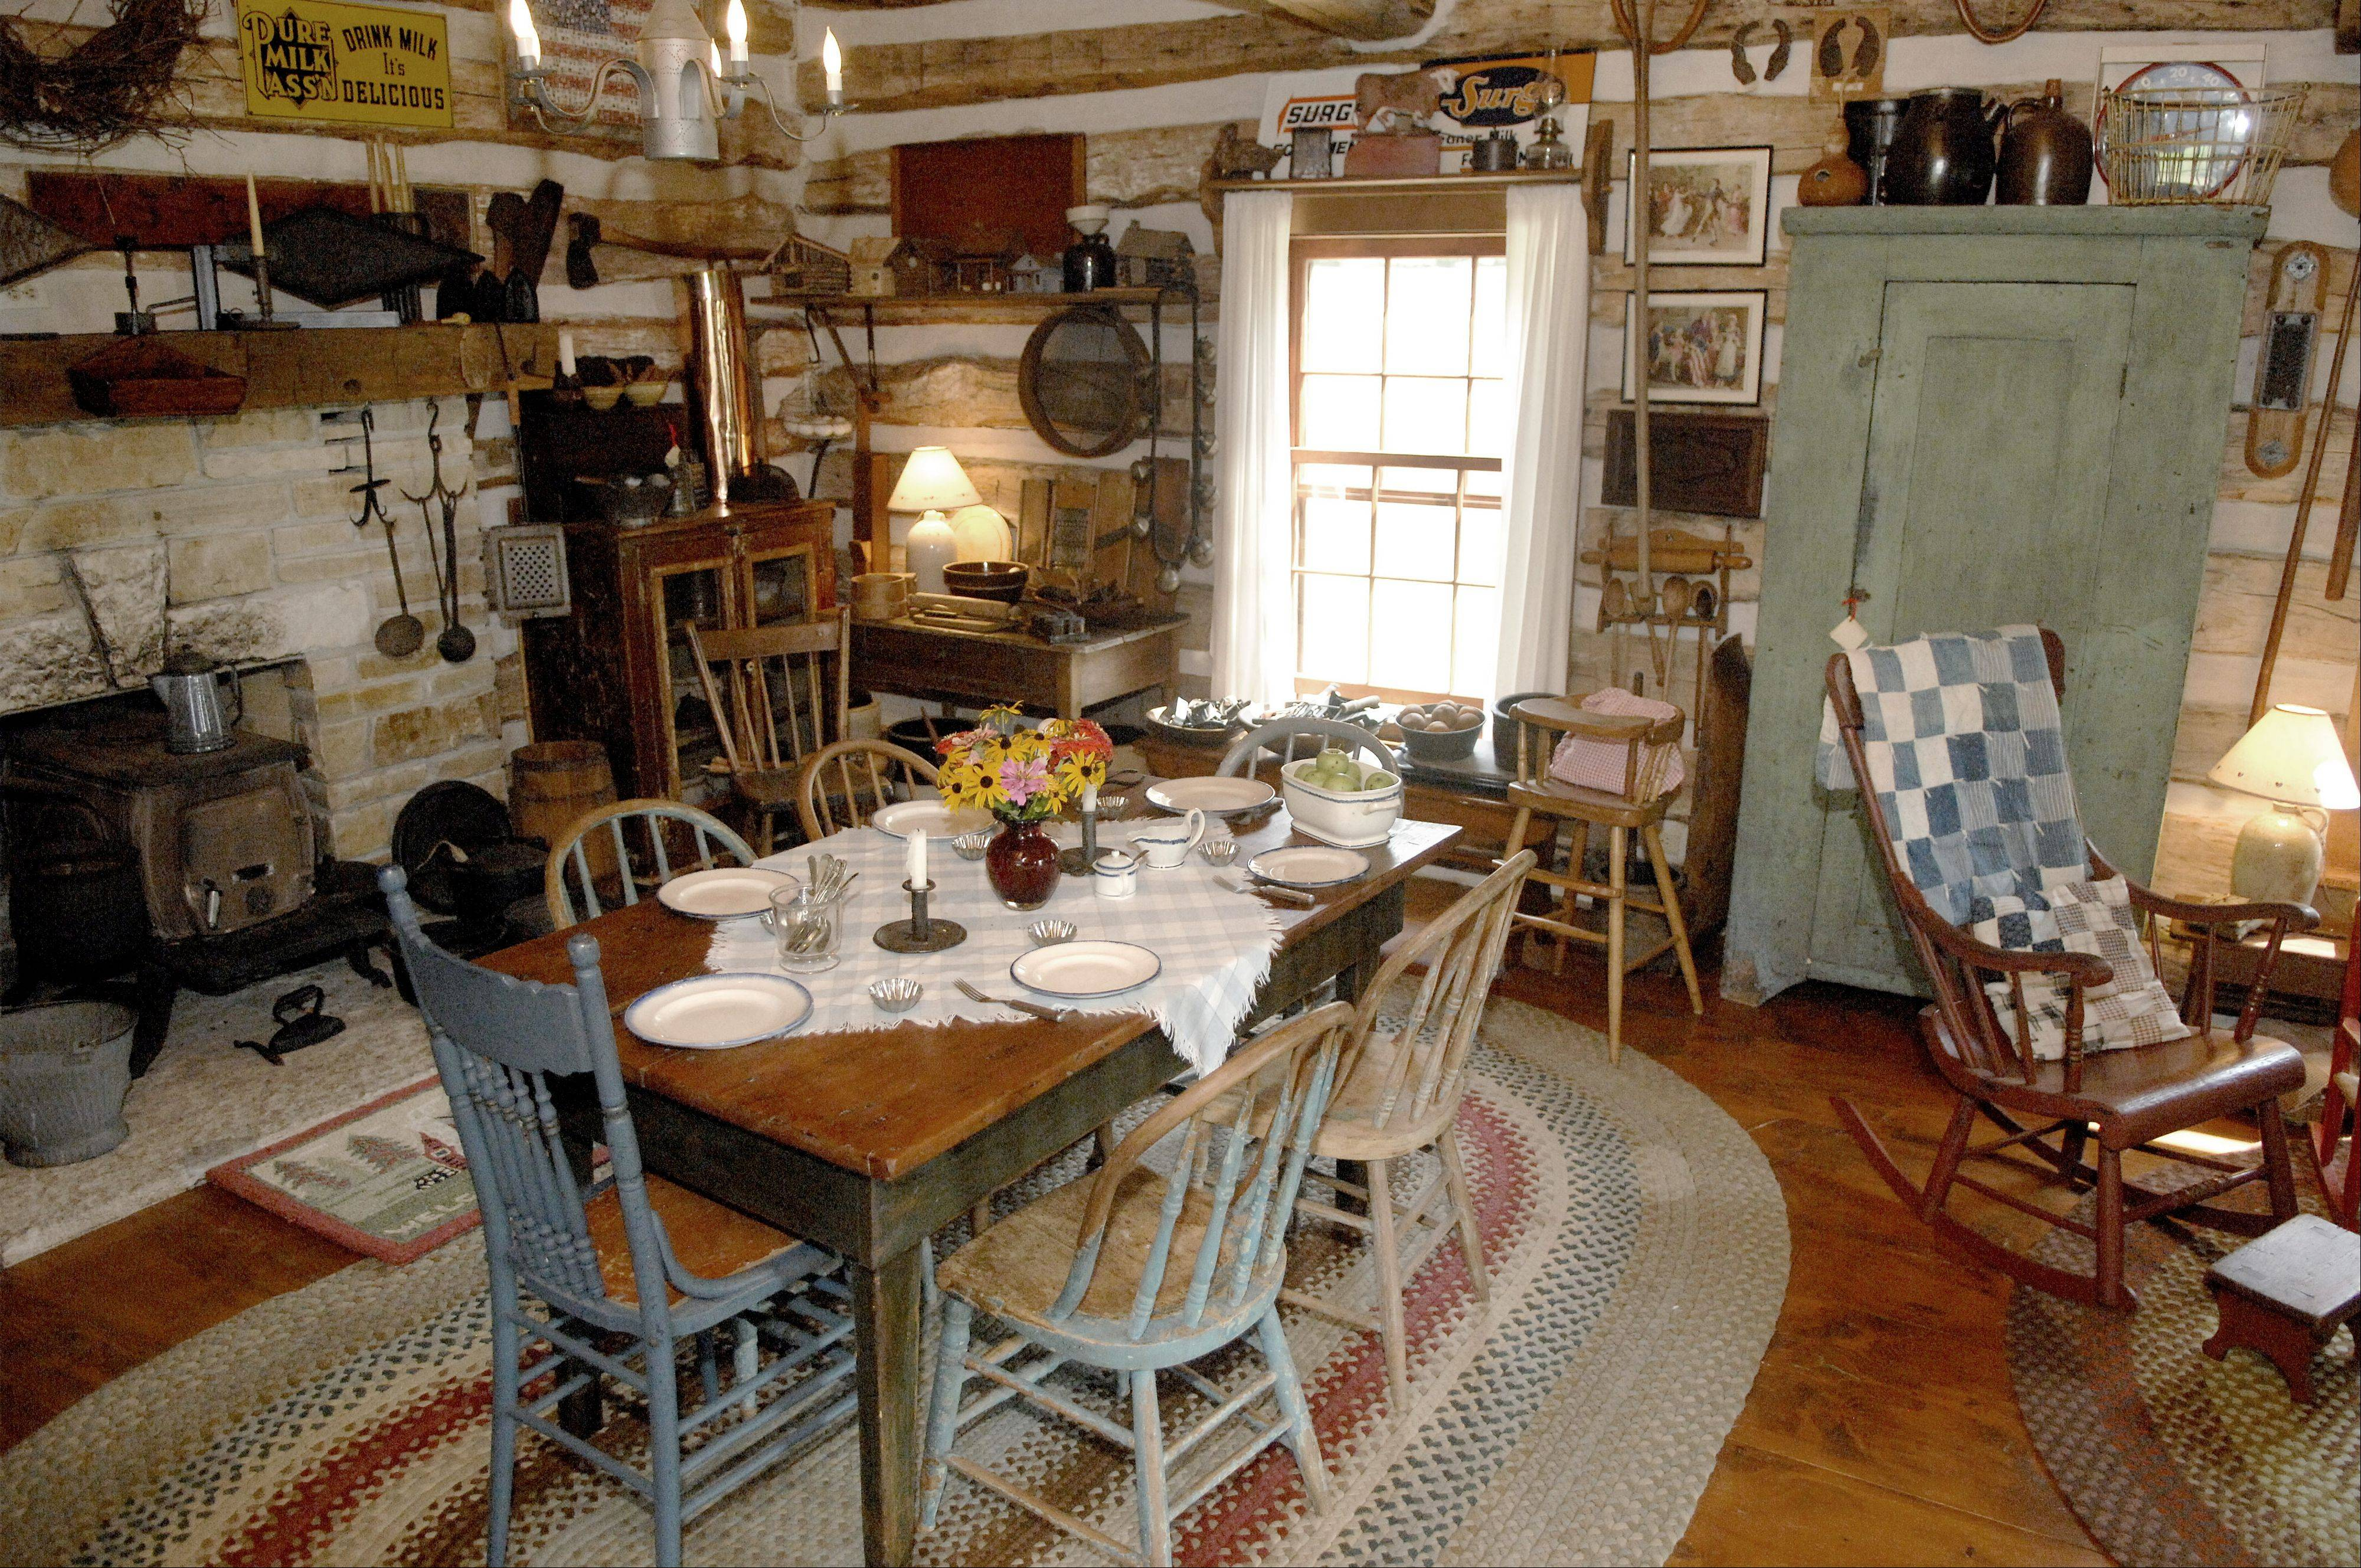 The furnishings in the old log house show what John White is talking about when he says the antiques he sells are farm primitives. The green pine cupboard is priced at $2,350.